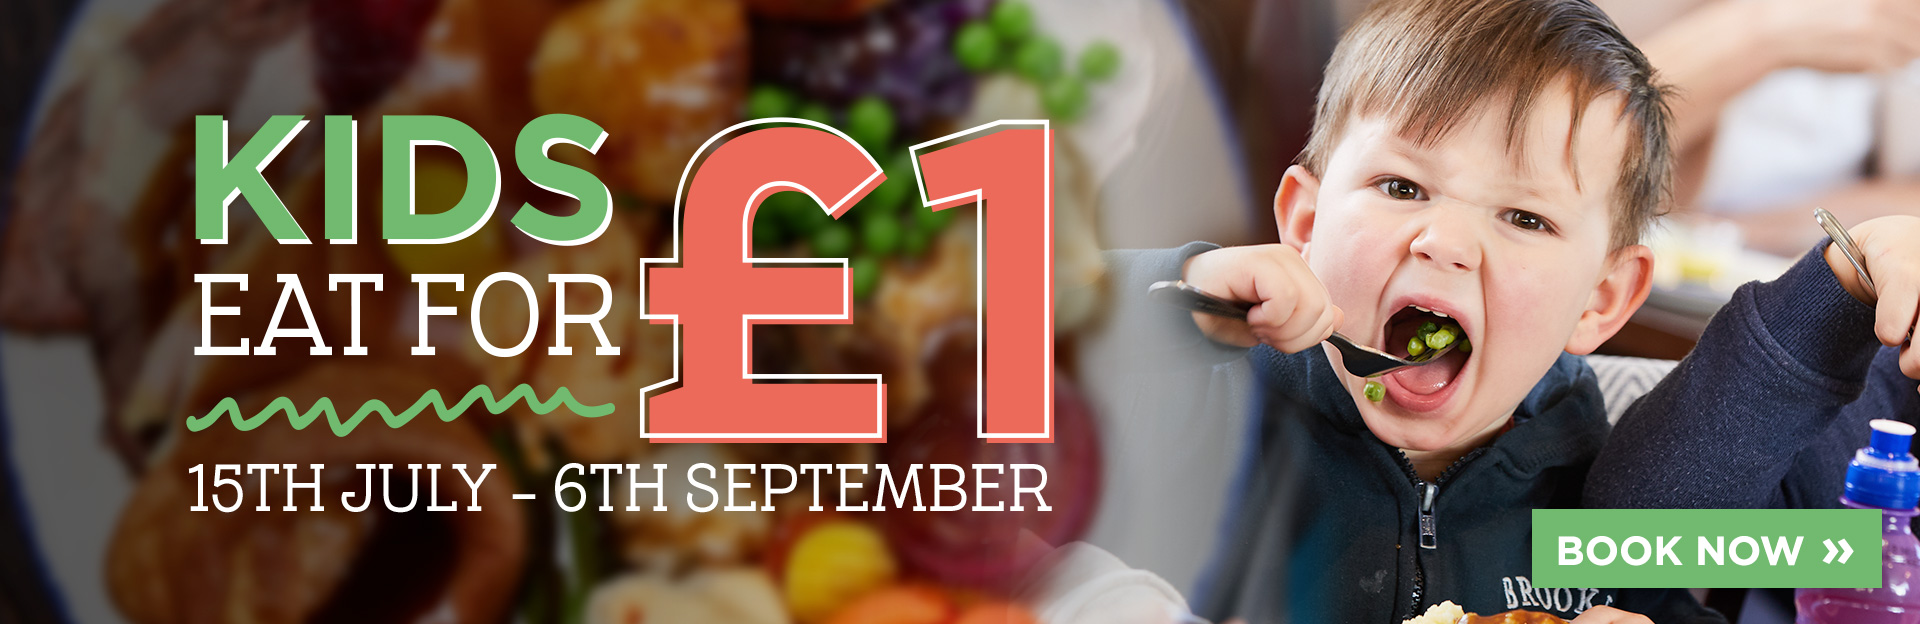 Kids eat for £1 at Broadwood Farm